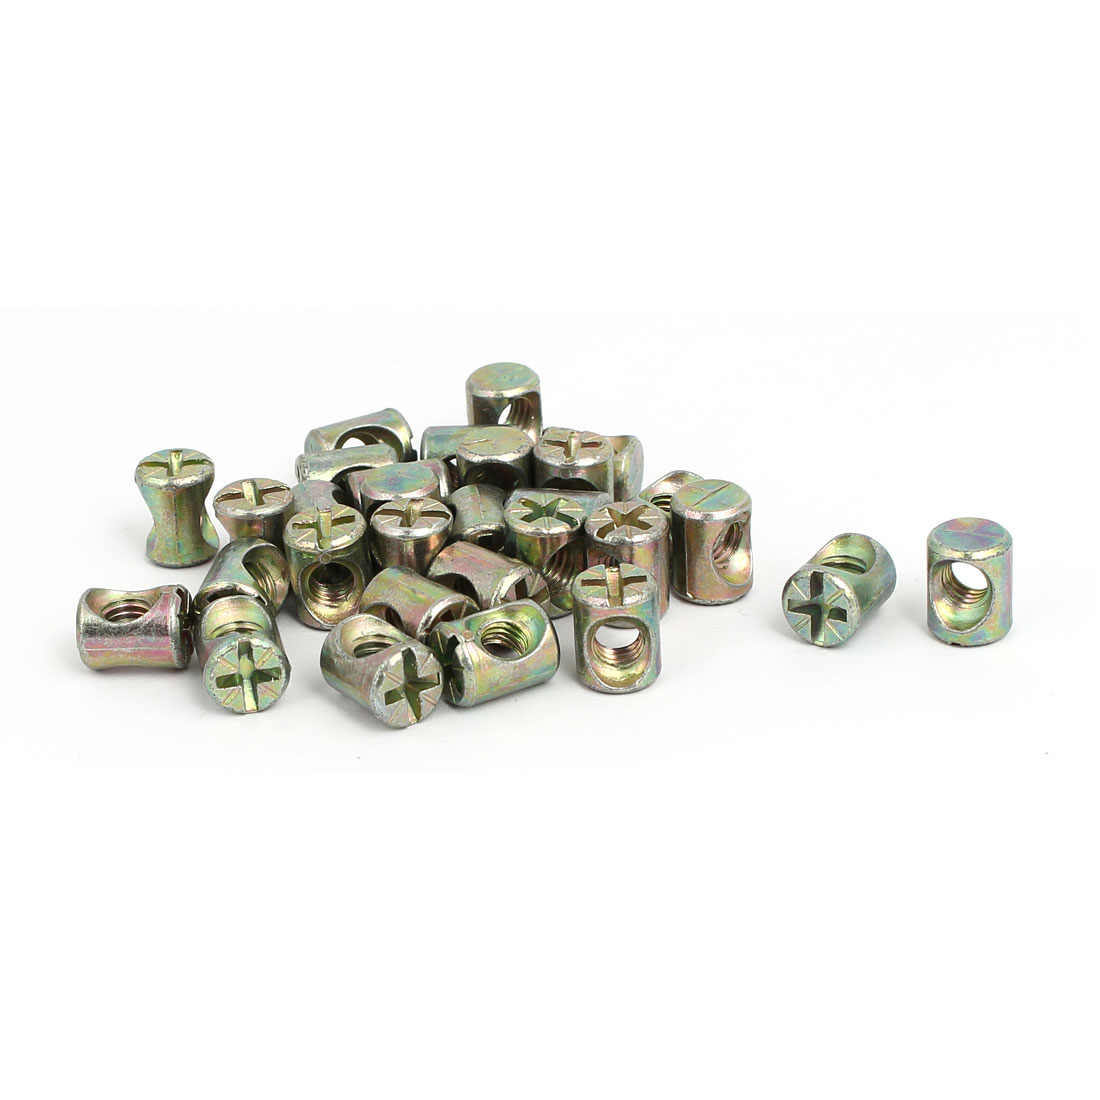 M6 x 12mm Cross Dowel Slotted Barrel Nuts 30PCS for Furniture Bed Chair - image 2 of 2